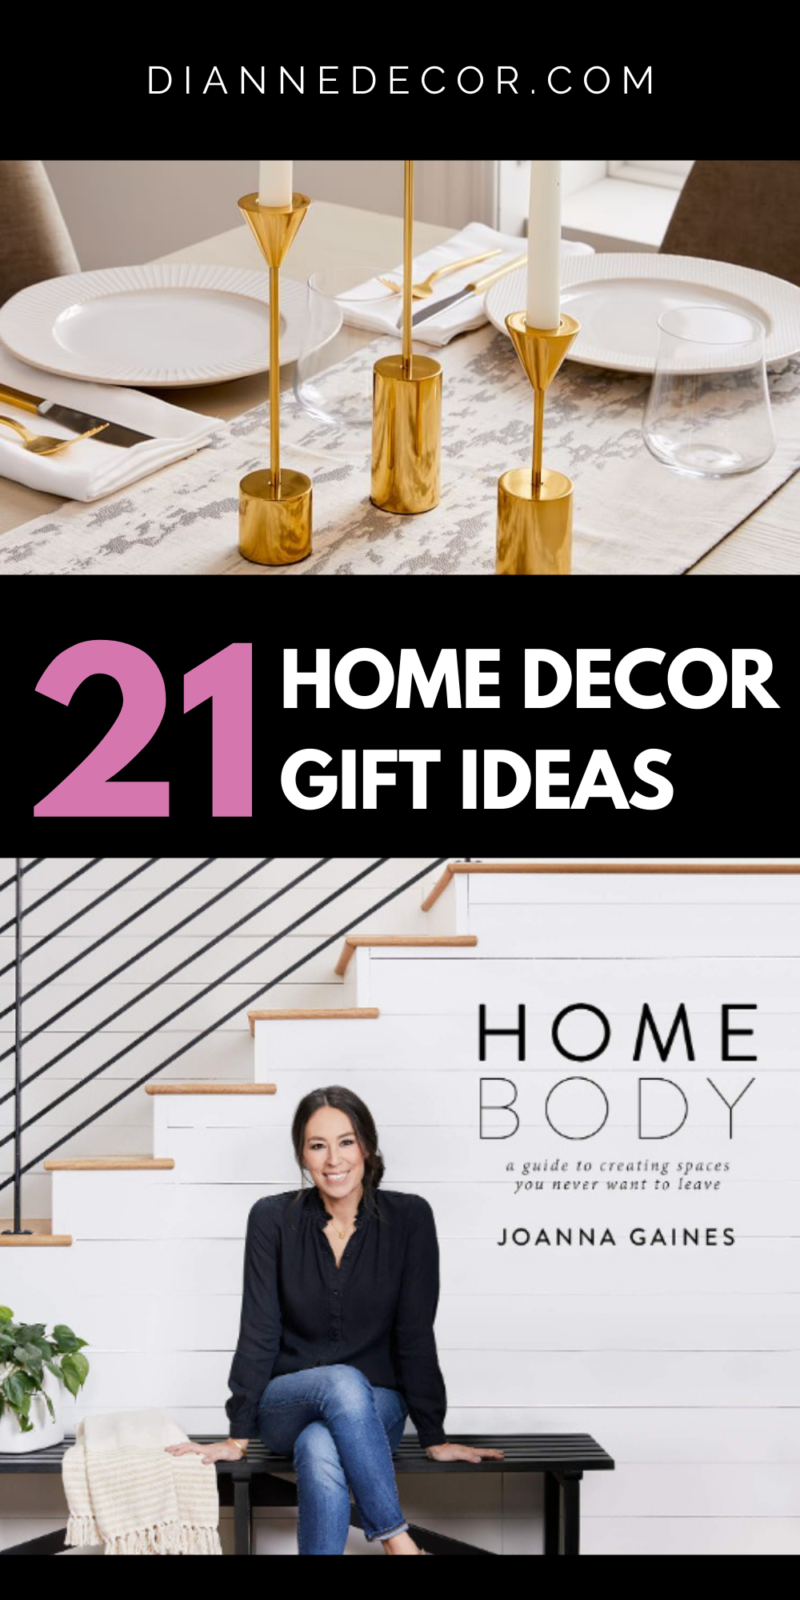 There are so many types and styles of home decor to choose from that it can be overwhelming. Here are 21 home decor gifts that are just right.